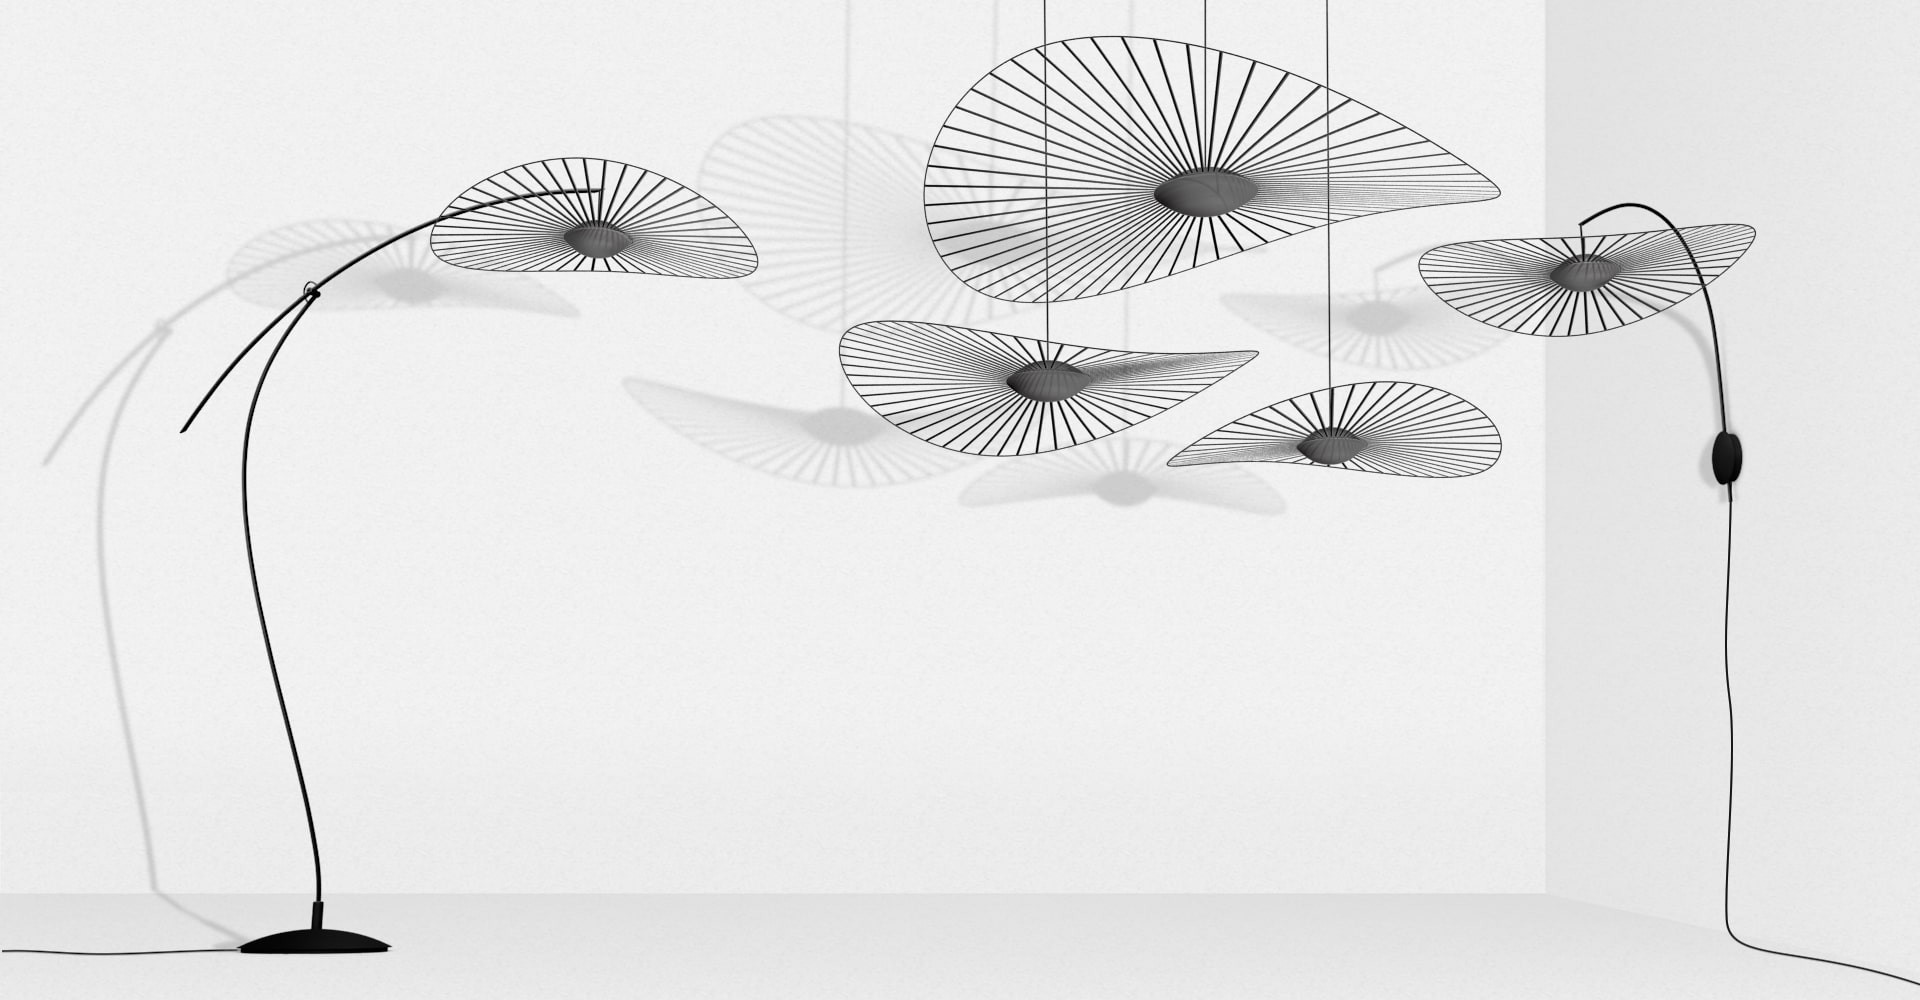 Vertigo Nova Wall Light - Petite Friture and Constance Guisset, an inseparable duo with lofty ambitions, have started a new chapter of the Vertigo story with Vertigo Nova: a highly technical piece of sophisticated design.  The collection includes items, from table and floor lamps to suspension and wall lights, all available in either black or white. The vast veil of graphic lines mounted atop a sphere of handblown glass uses built-in LED technology to emit a soft light.  Vertigo Nova quivers as the geometric curve of the fiberglass hoop. Installed by hand by qualified French artisans and held delicately but firmly in place by taught ribbons, reacts to the lightest of breezes.  Vertigo Nova is the epitome of striking a balance between technology and elegance. | Matter of Stuff